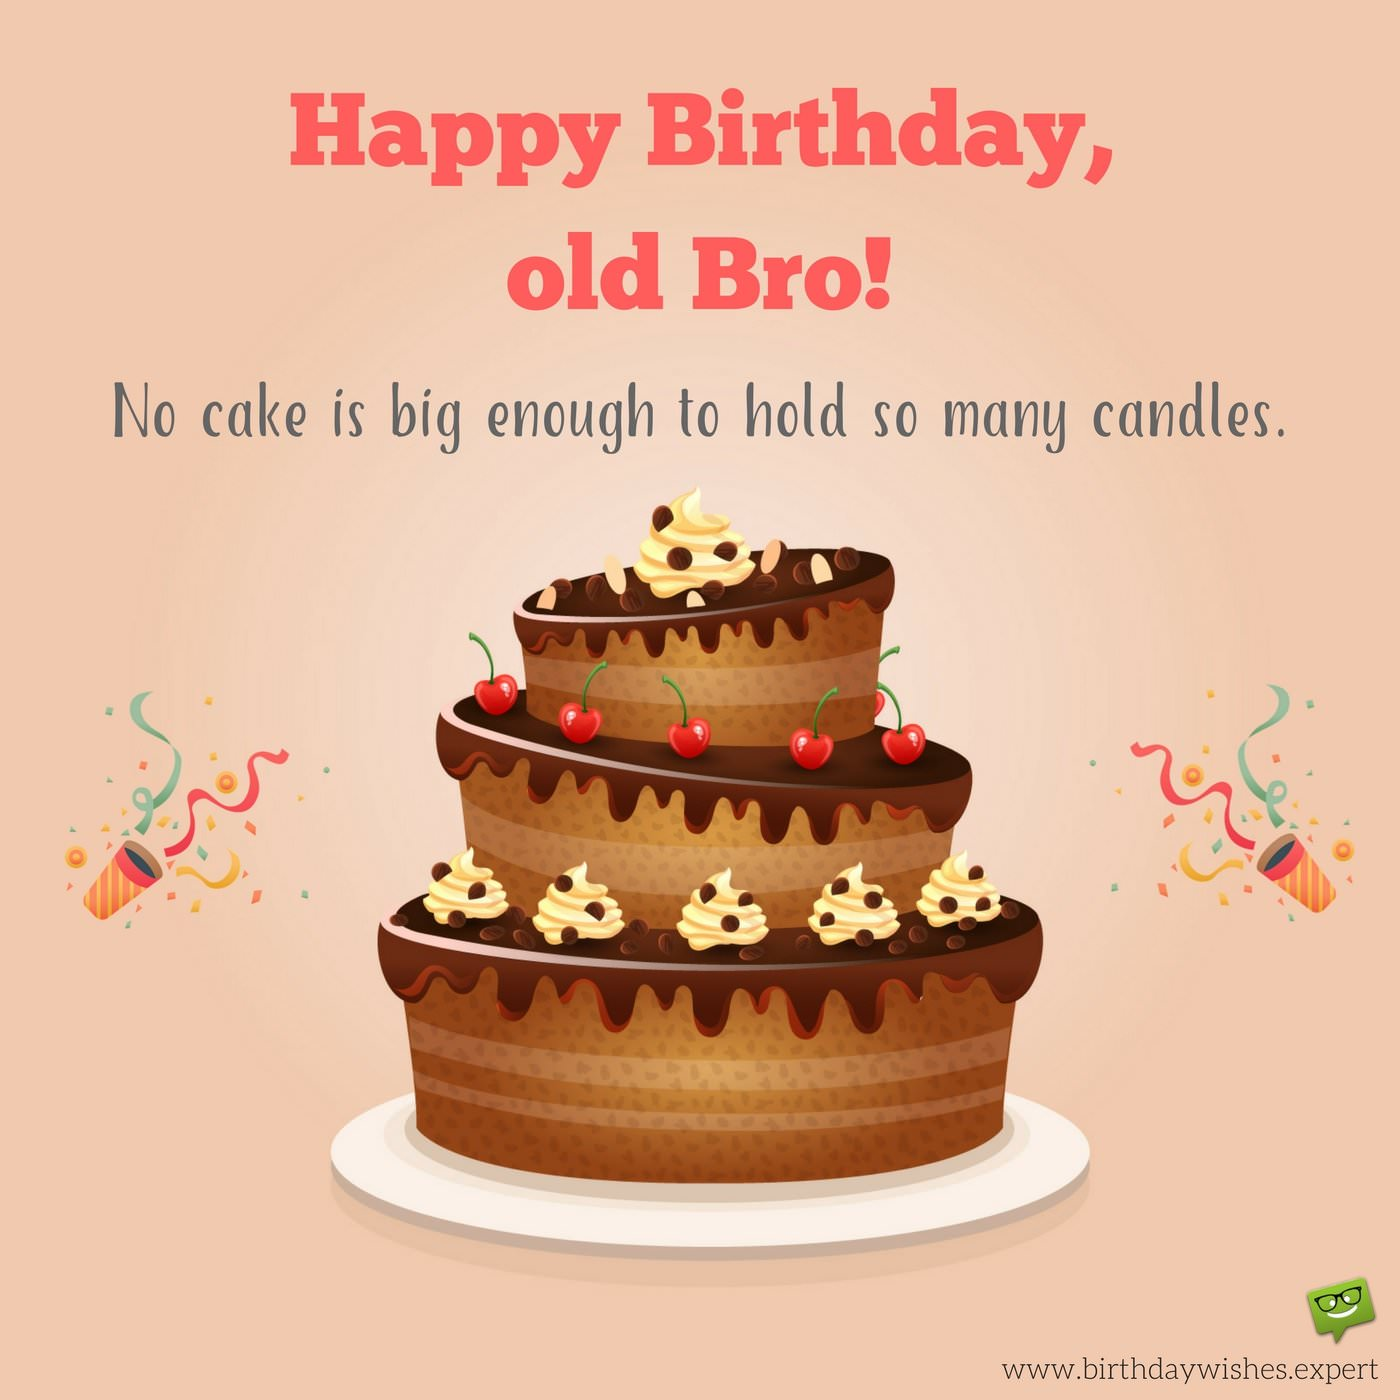 Aint no cake big enough funny birthday wishes for brothers happy birthday old bro there is no cake big enough to hold so many candles m4hsunfo Images